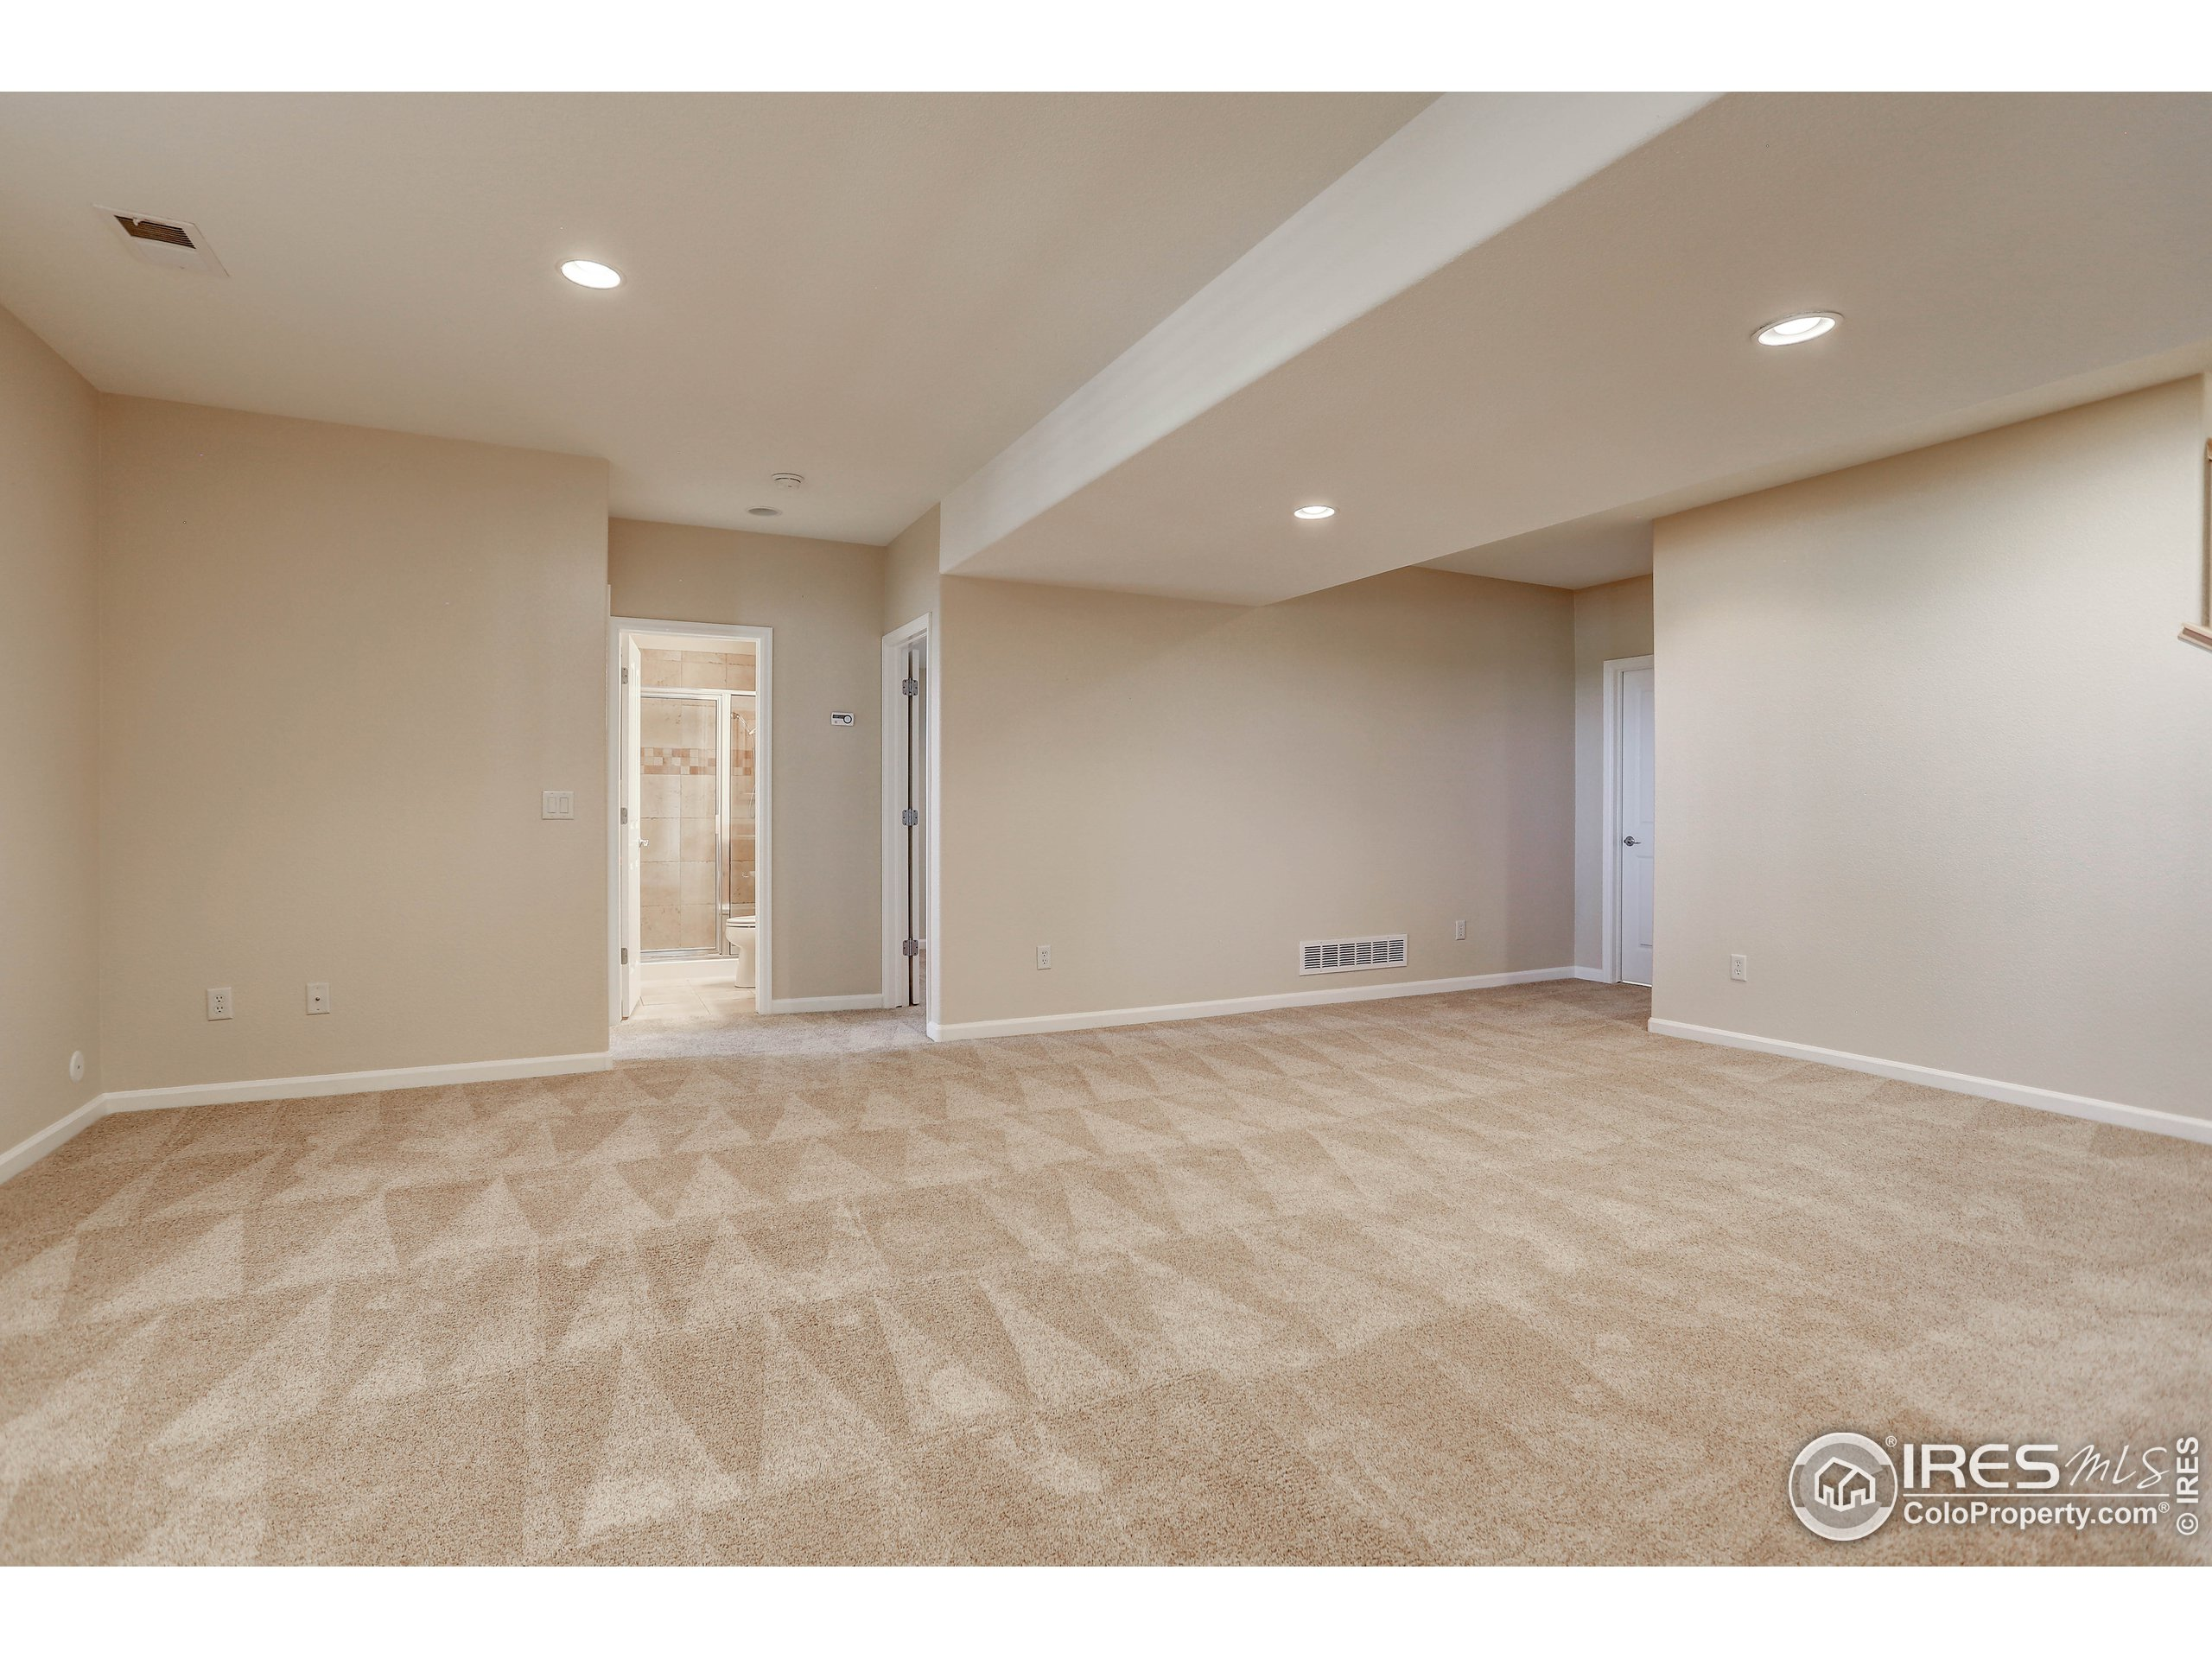 great room to basement beds and bath